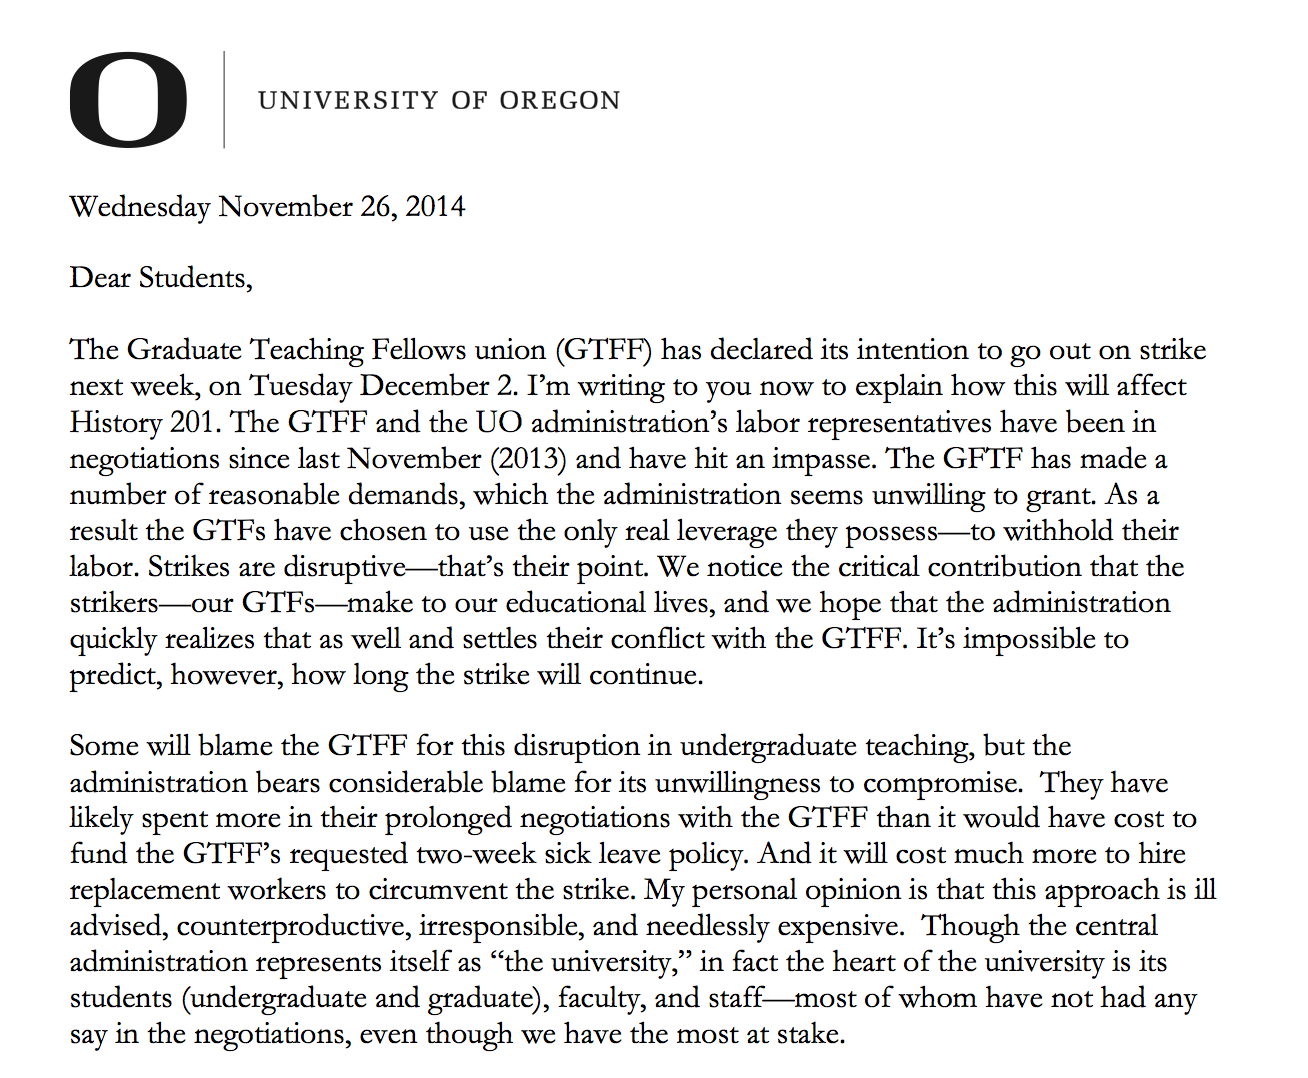 CAS Dean Andrew Marcus asks undergrads to rat out striking grad – Thank You Letter to Professor